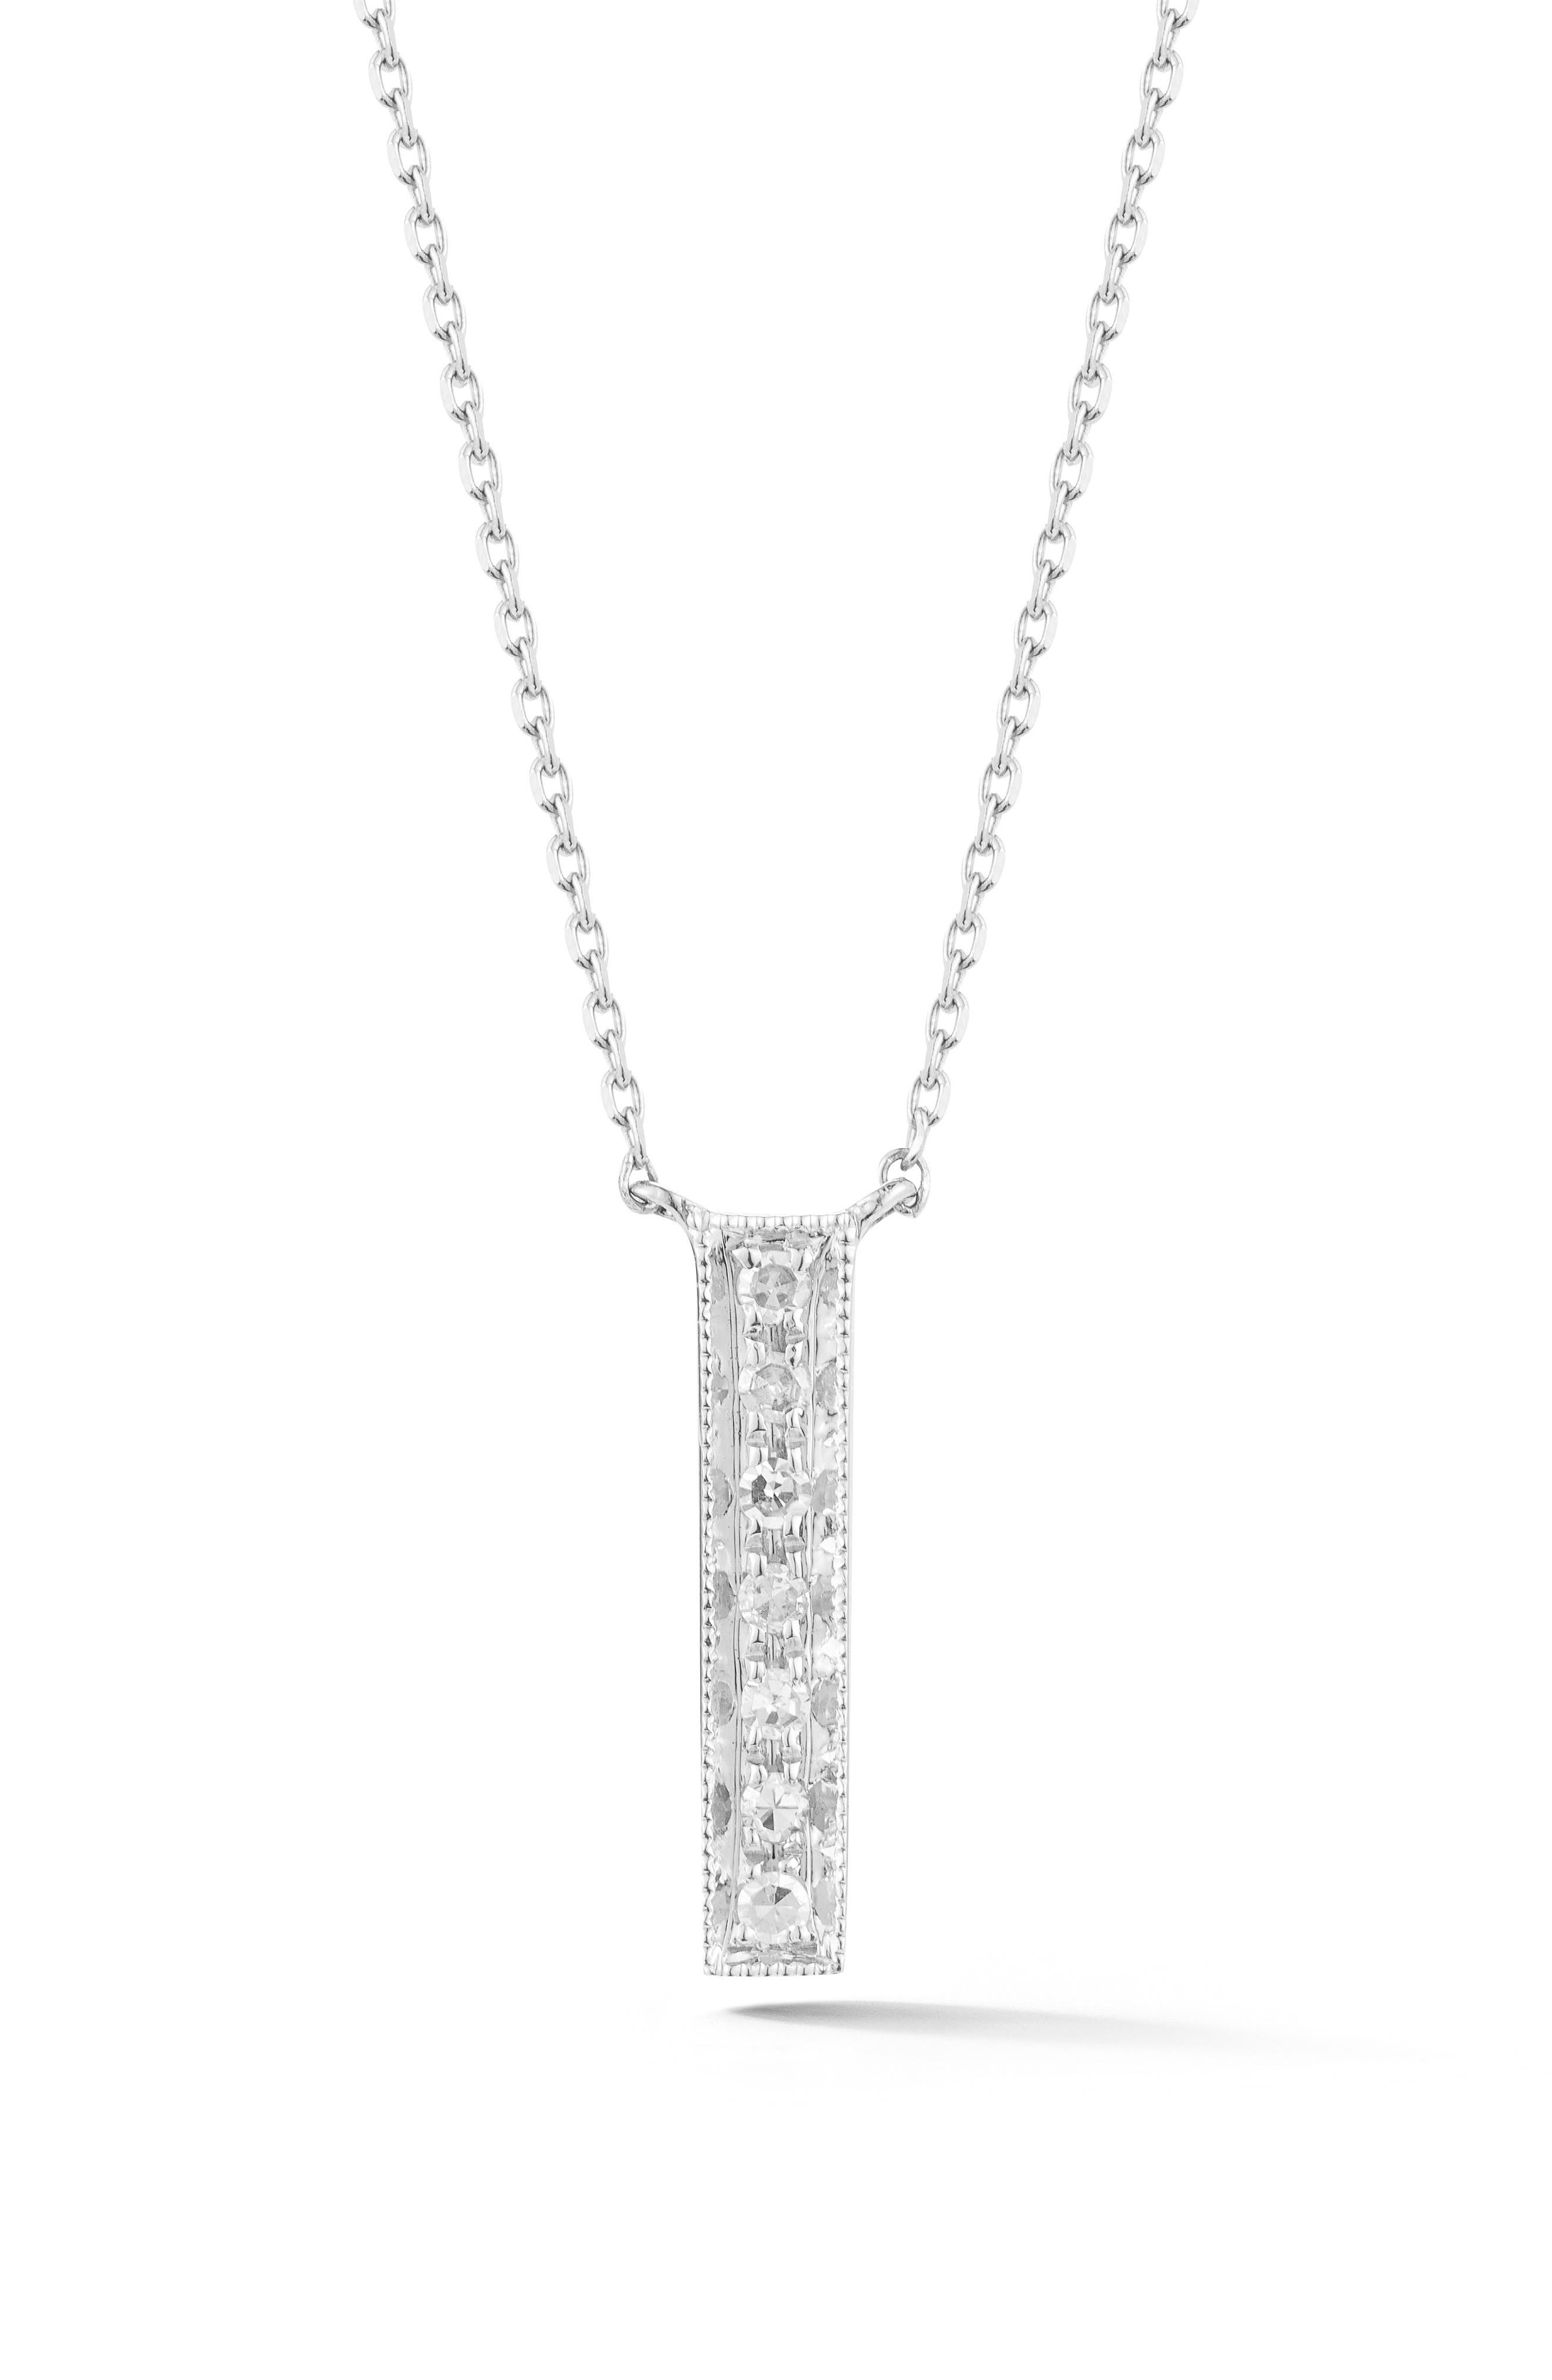 Dana Rebecca Designs Sylvie Rose Vertical Bar Diamond Pendant Necklace